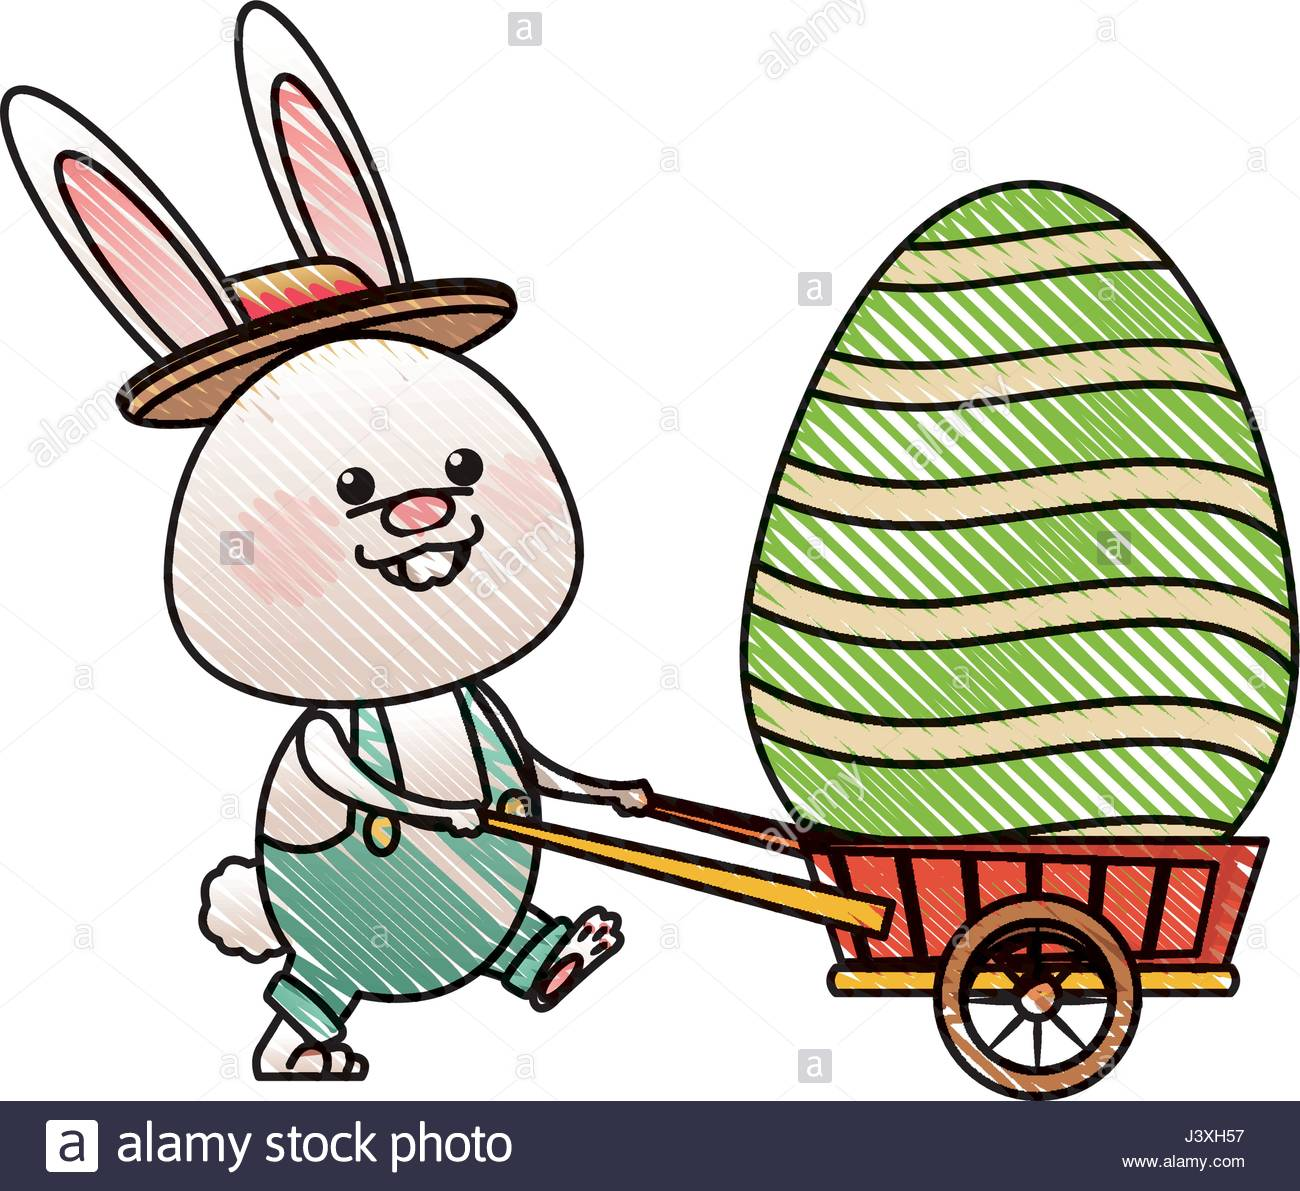 1300x1191 Drawing Easter Rabbit With Decor Egg Wheelbarrow Stock Vector Art